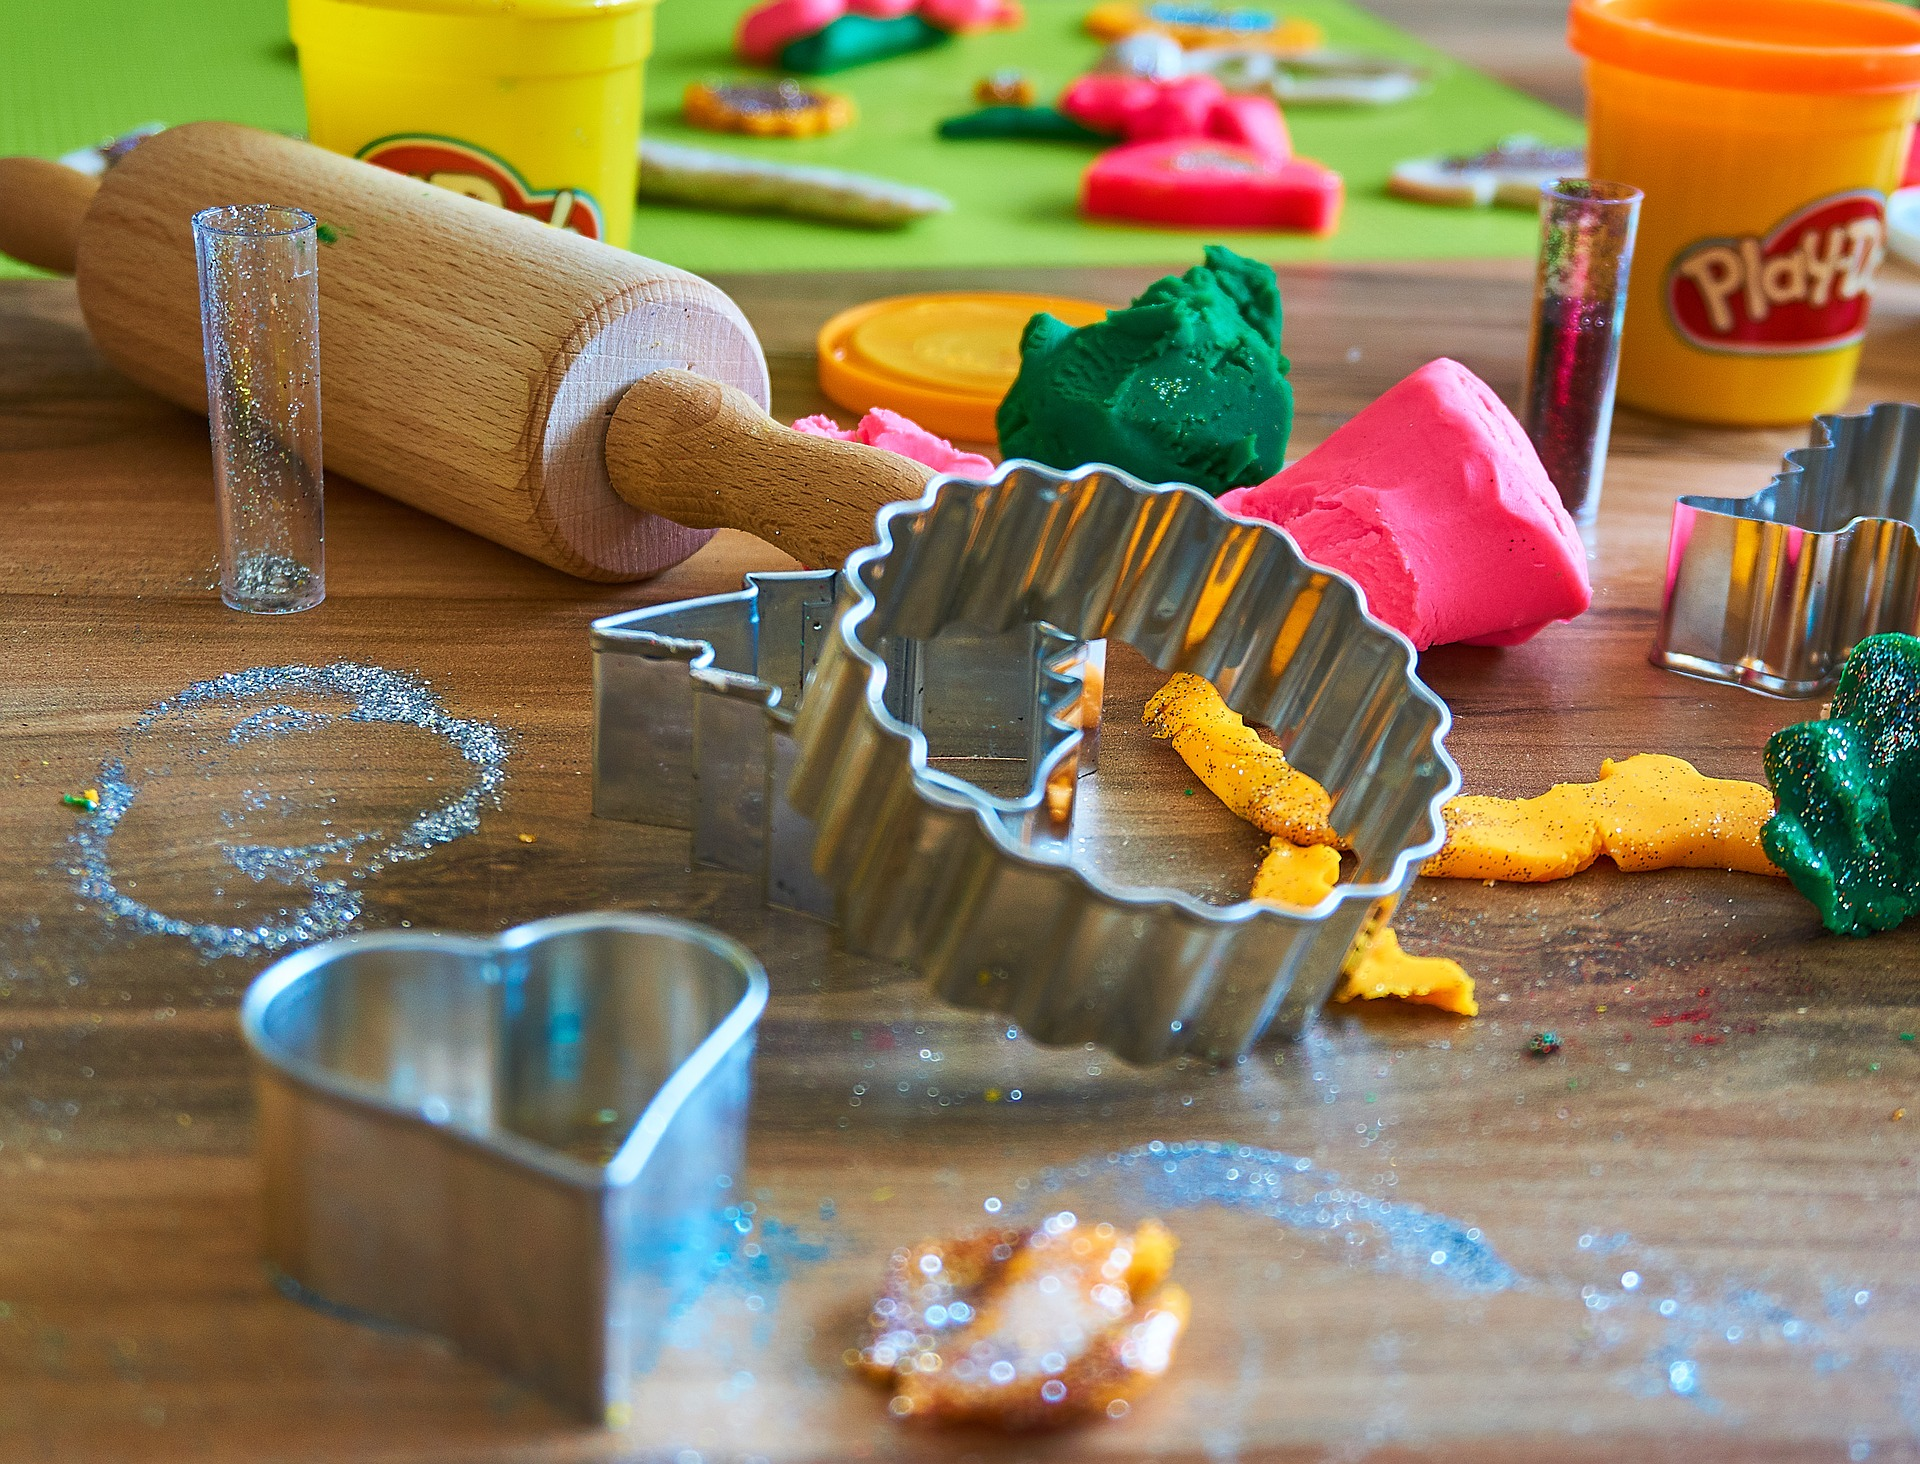 The Non-Glamorous History of Play-doh